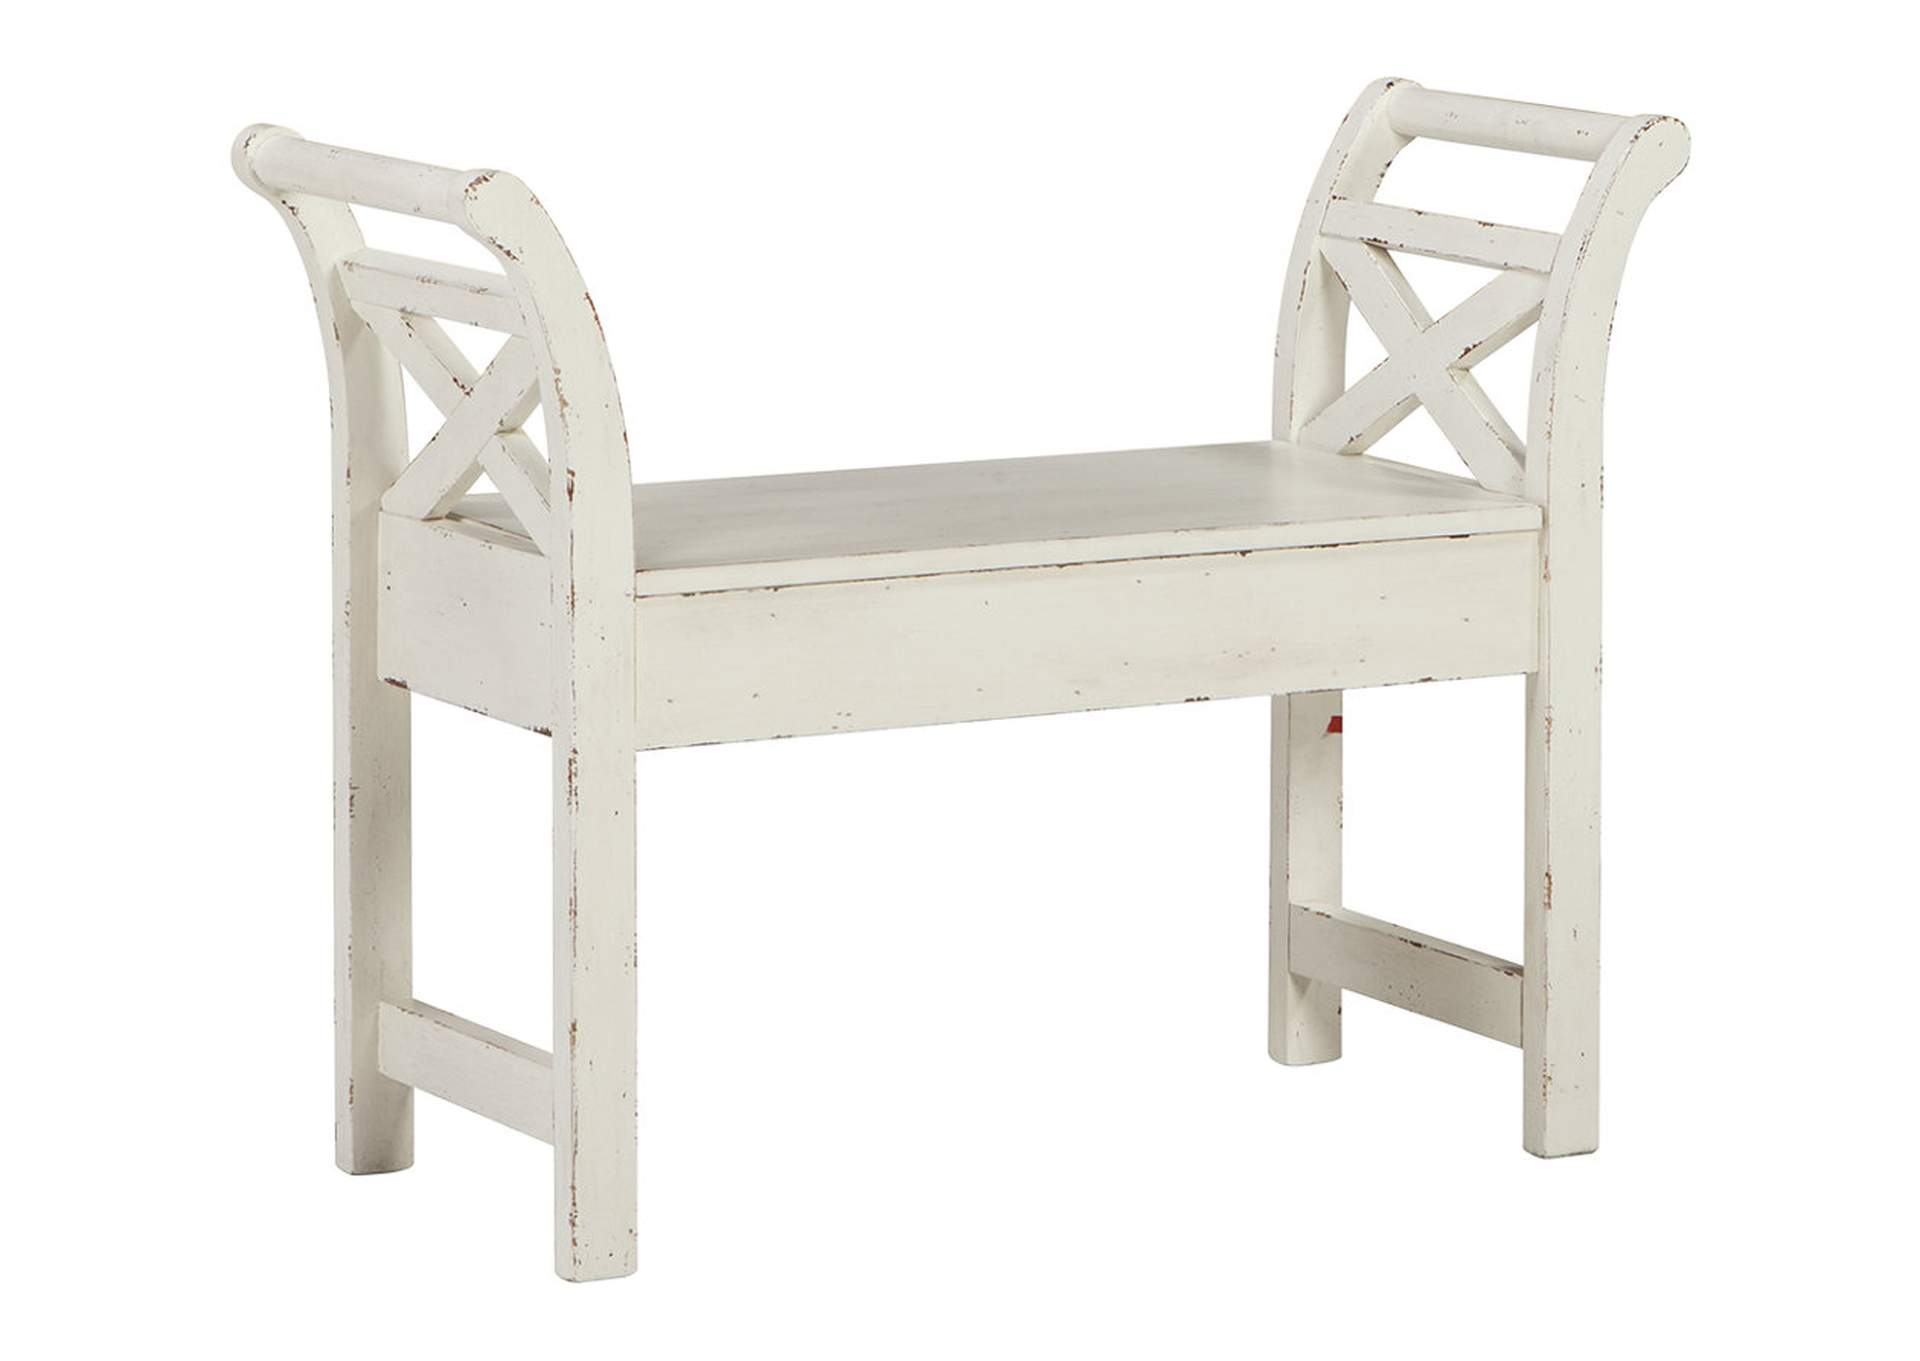 Heron Ridge White Accent Bench,Direct To Consumer Express